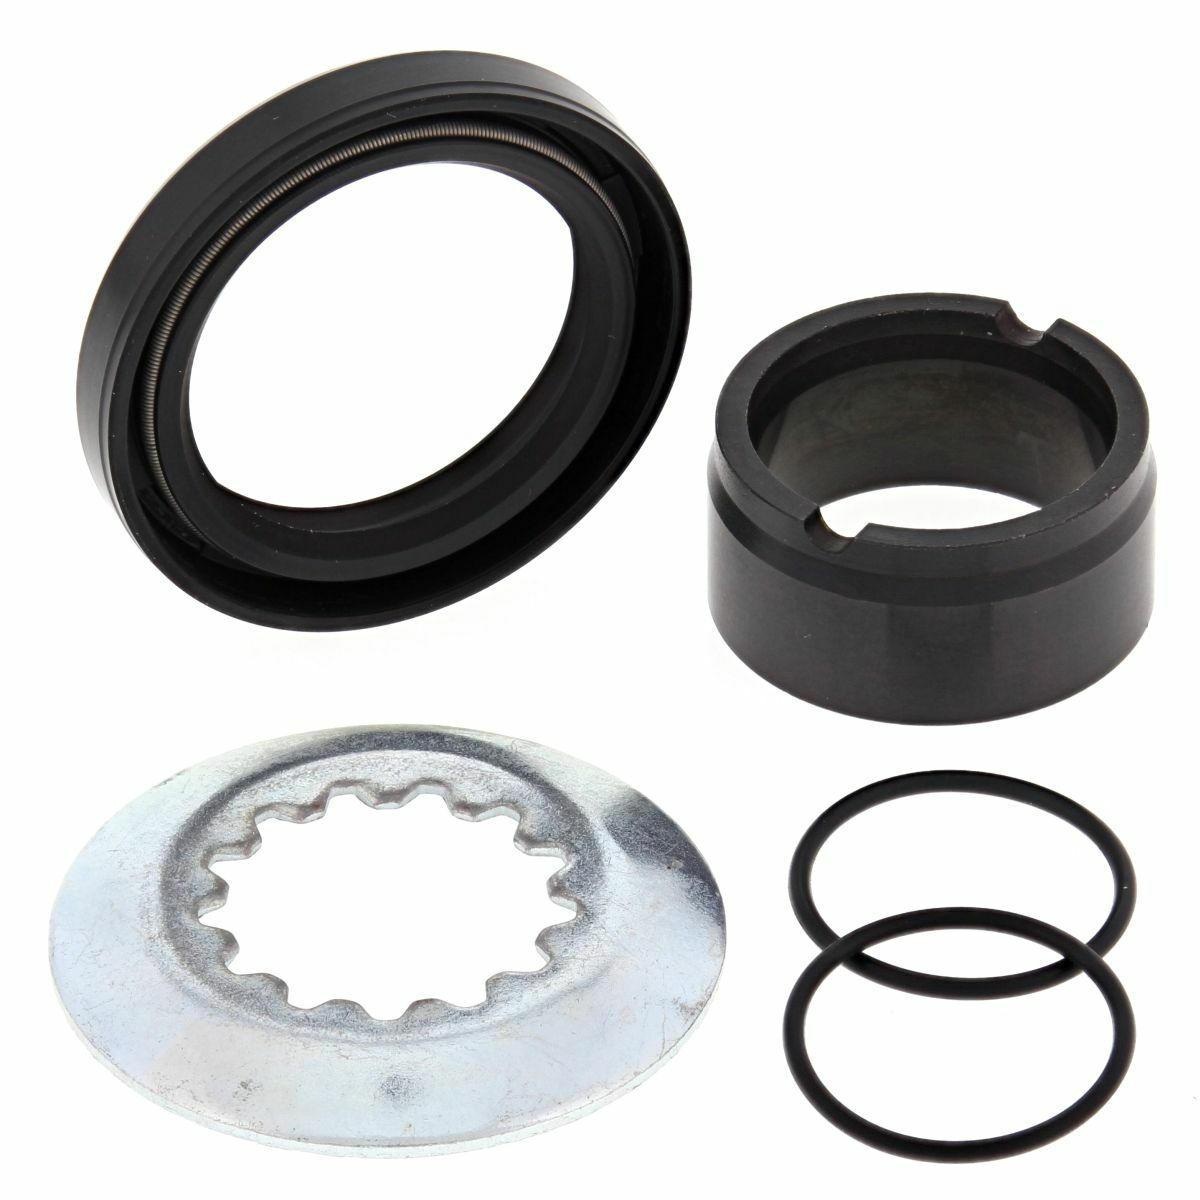 Obrázek produktu Counter shaft Seal Kit All Balls Racing 25-4039